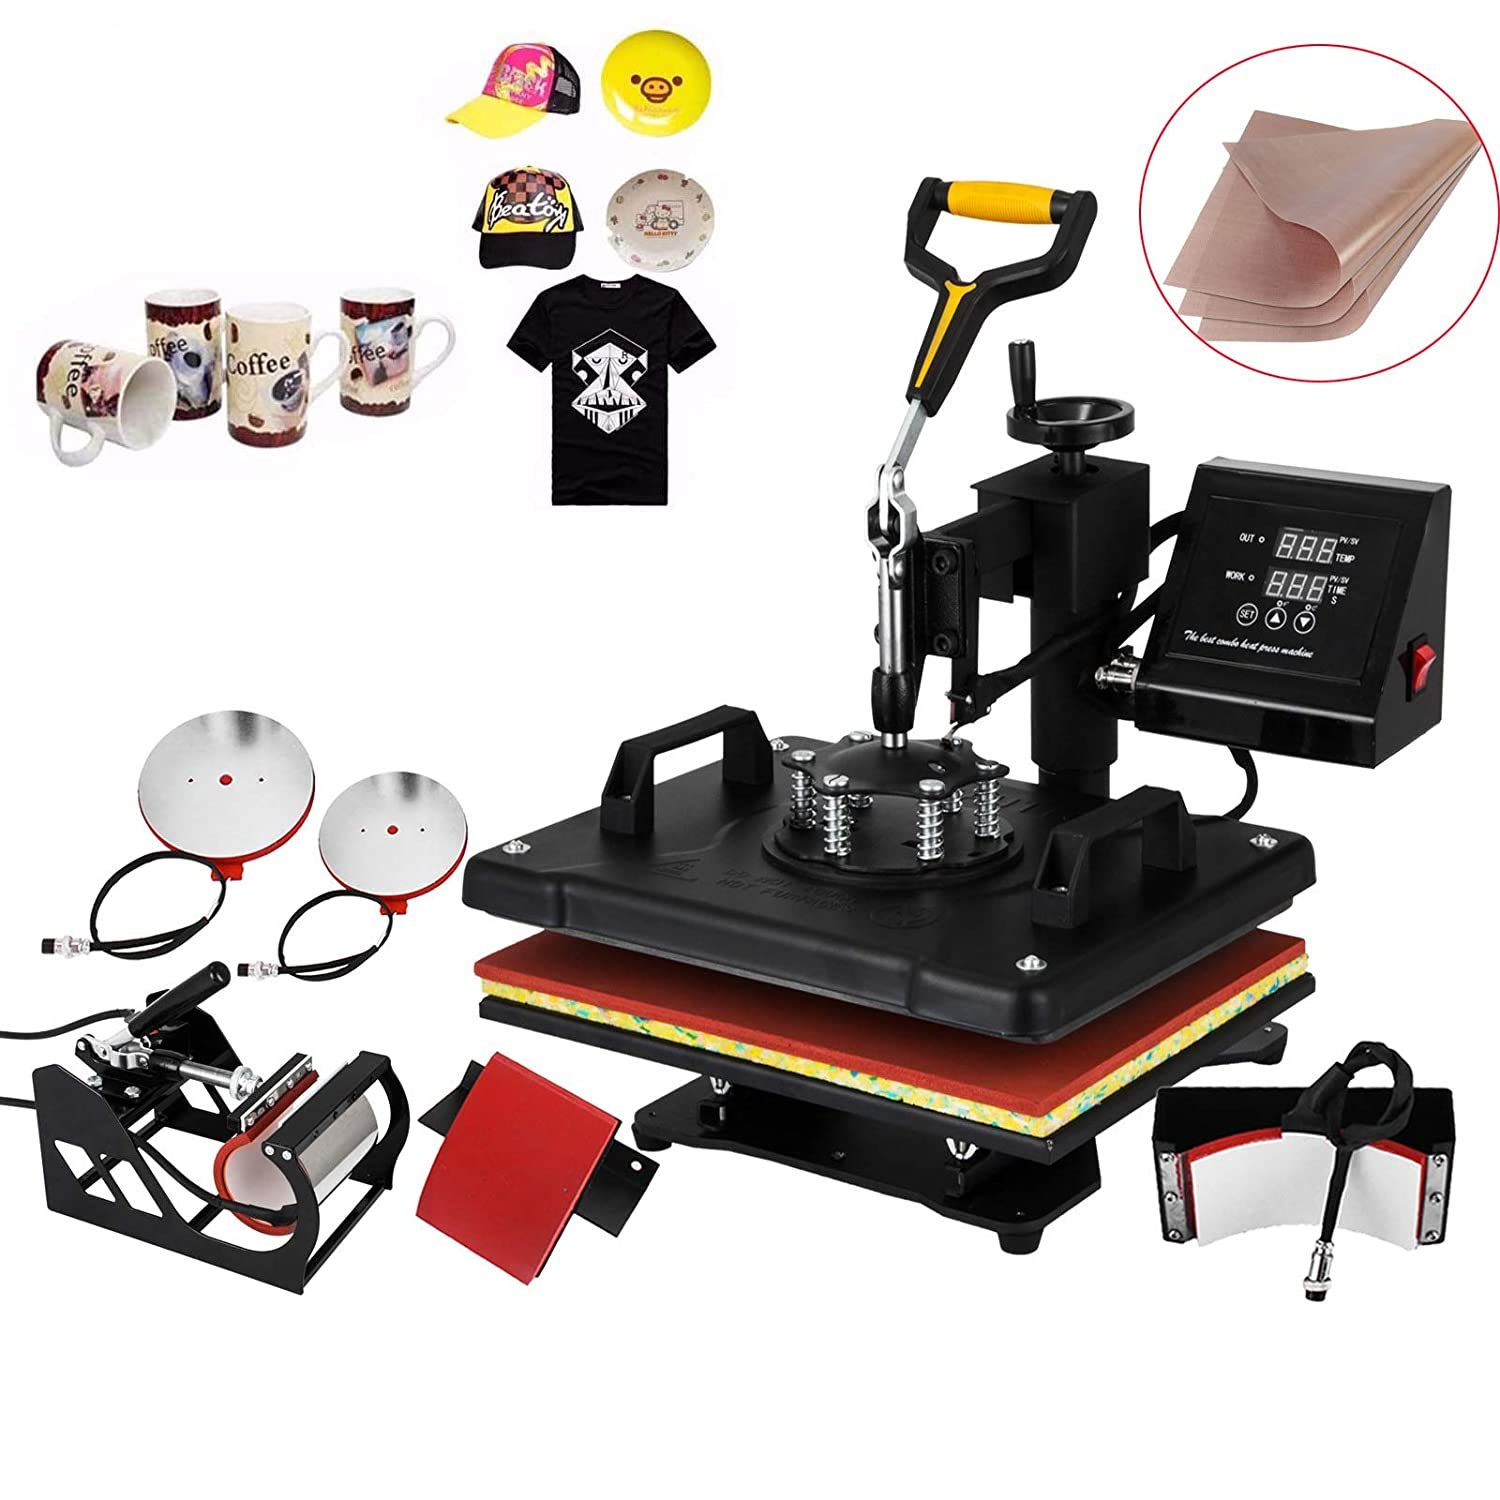 Mophorn Heat Press 12 X 15 inch 5 in 1 Desktop Iron Baseball Hat Press Dual Digital Transfer Sublimation Multifunction Heat Press Machine Swing Away Design (5IN1 Presser Yellow)